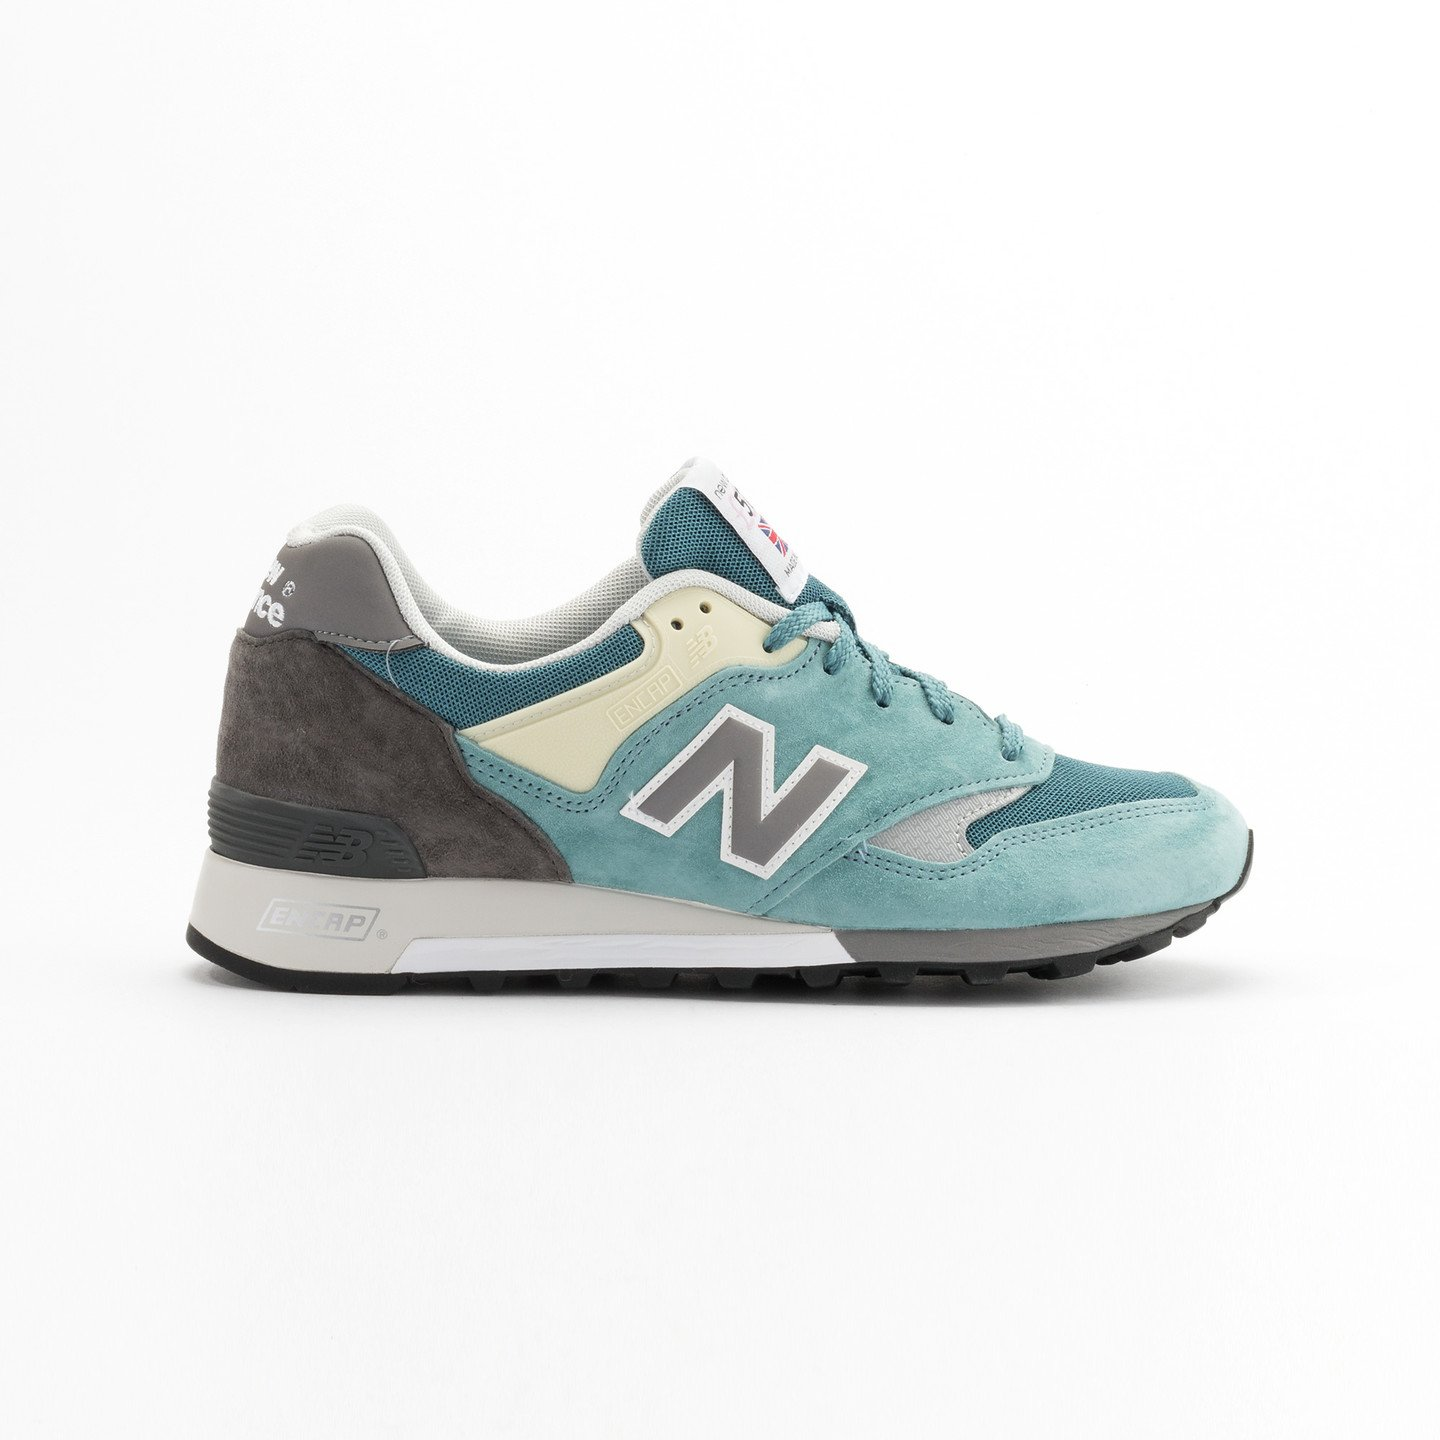 New Balance M577 ETB - Made in England Sea Glass / Grey/ Yellow M577ETB-41.5